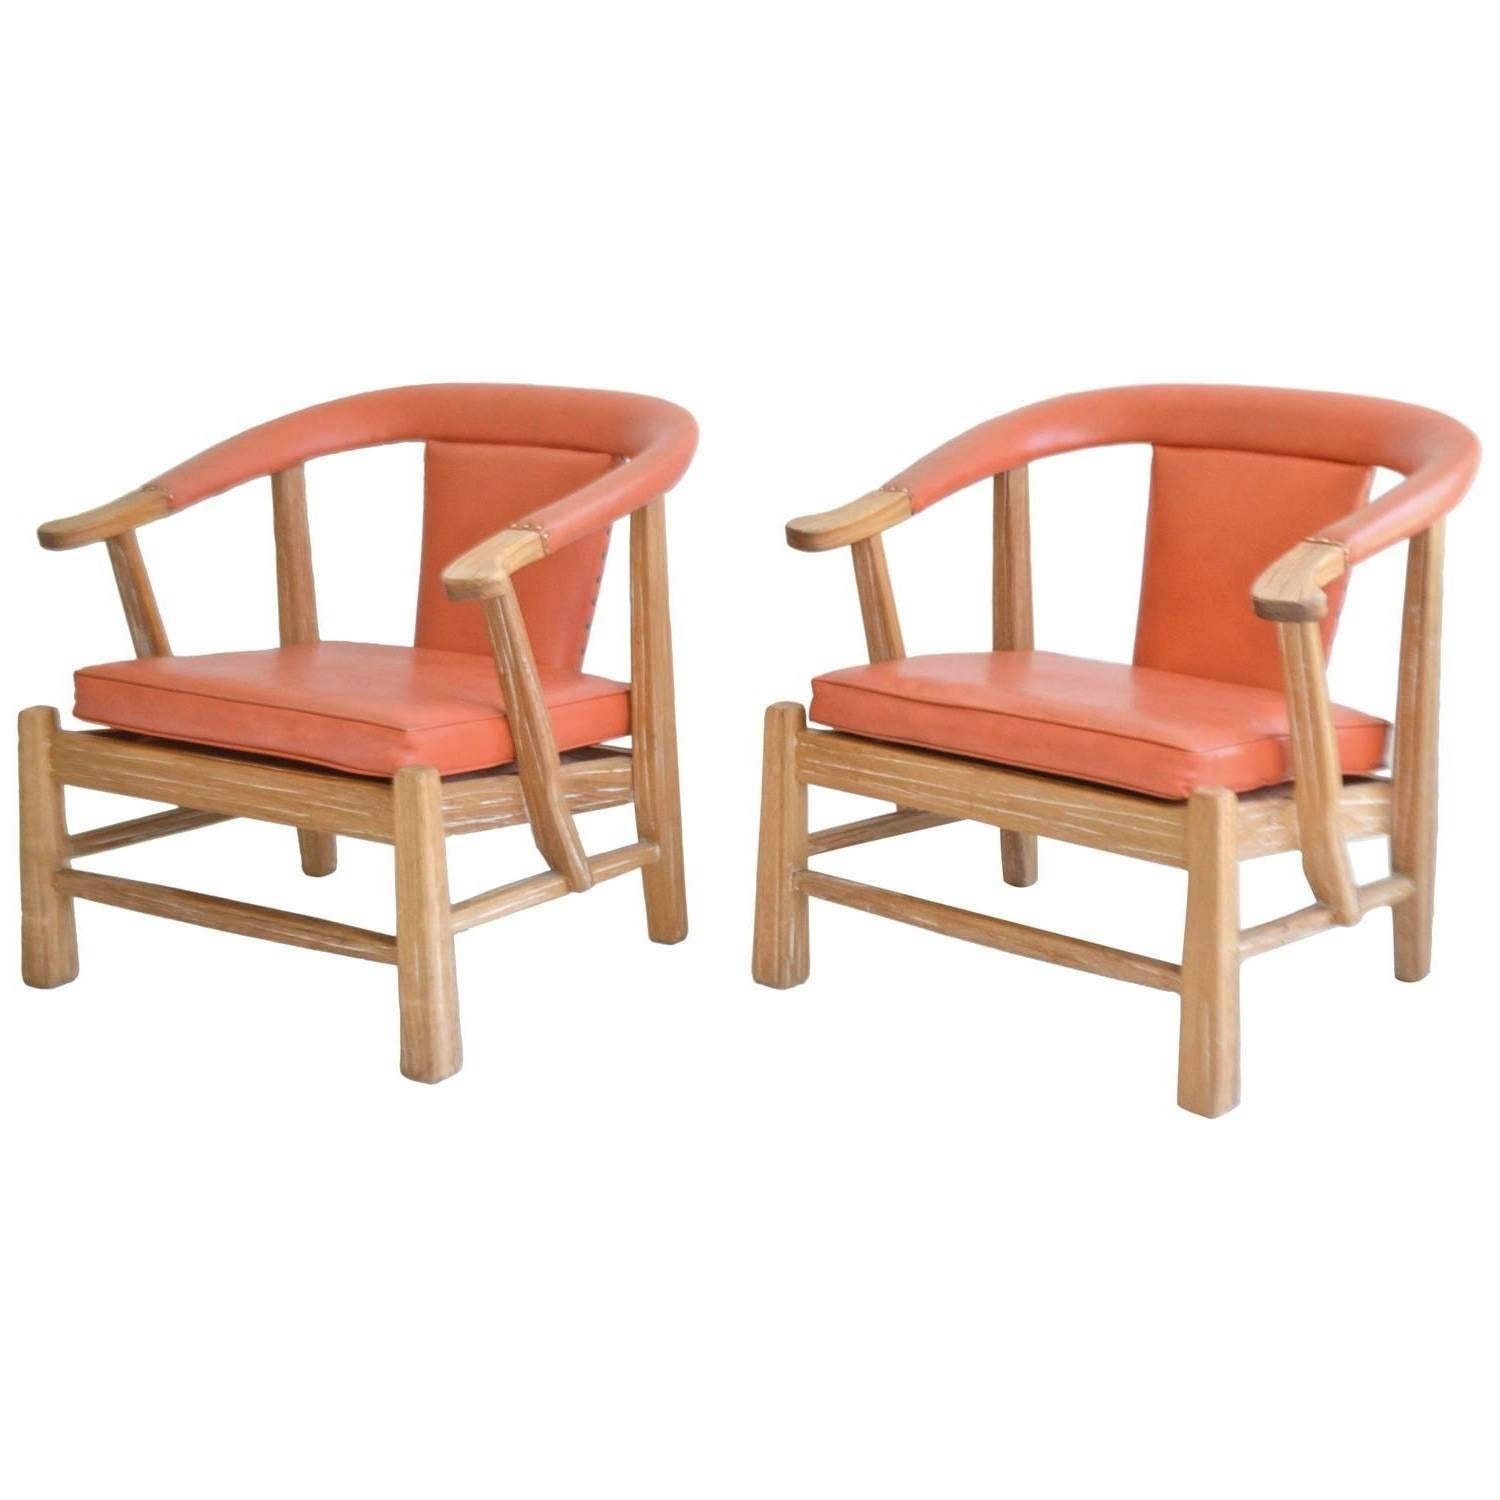 Merveilleux Pair Of Midcentury Asian Inspired Club Chairs / Lounge Chairs For Sale